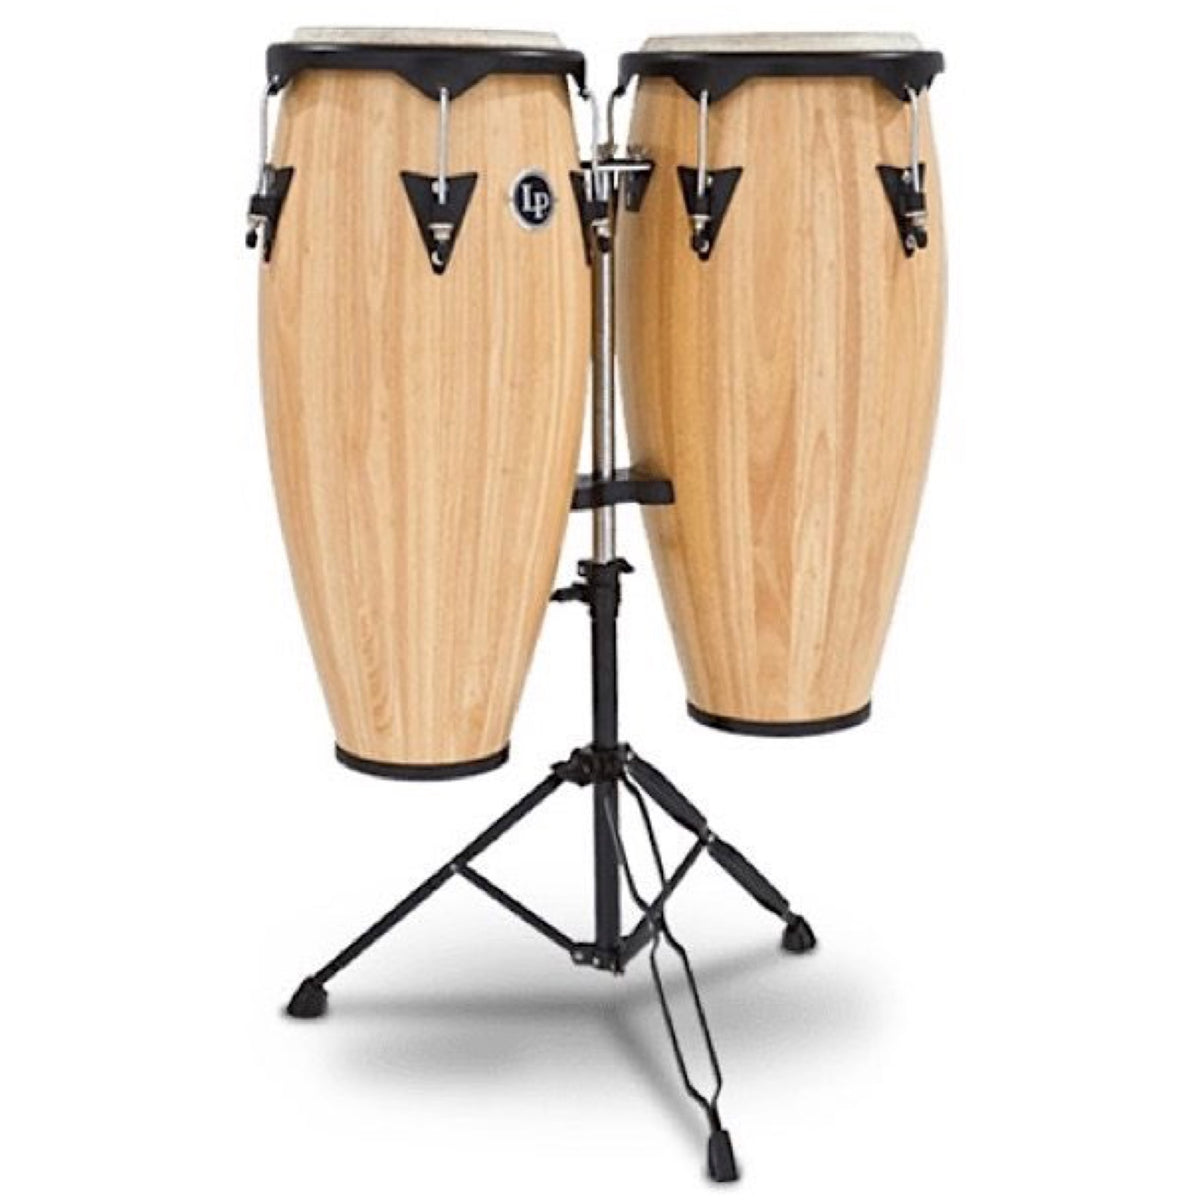 Latin Percussion 646 City Series Congas, Natural, 10 Inch and 11 Inch